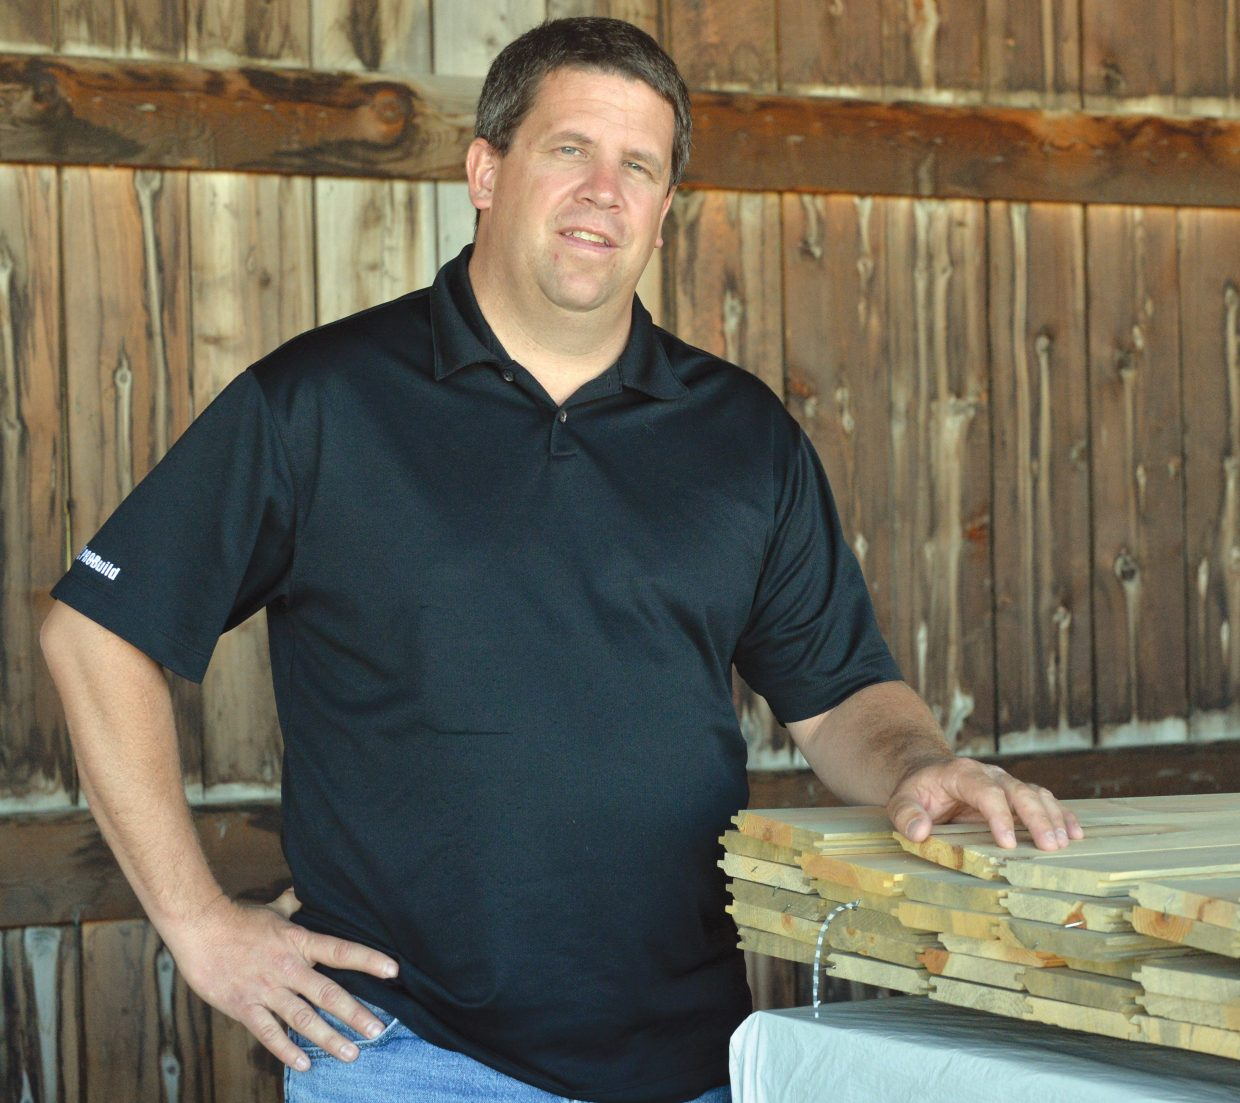 Routt County 4-H livestock judging team coach Rod Wille recently was honored with a statewide leadership award, but the Steamboat Springs native says he owes it all to the members of his teams.